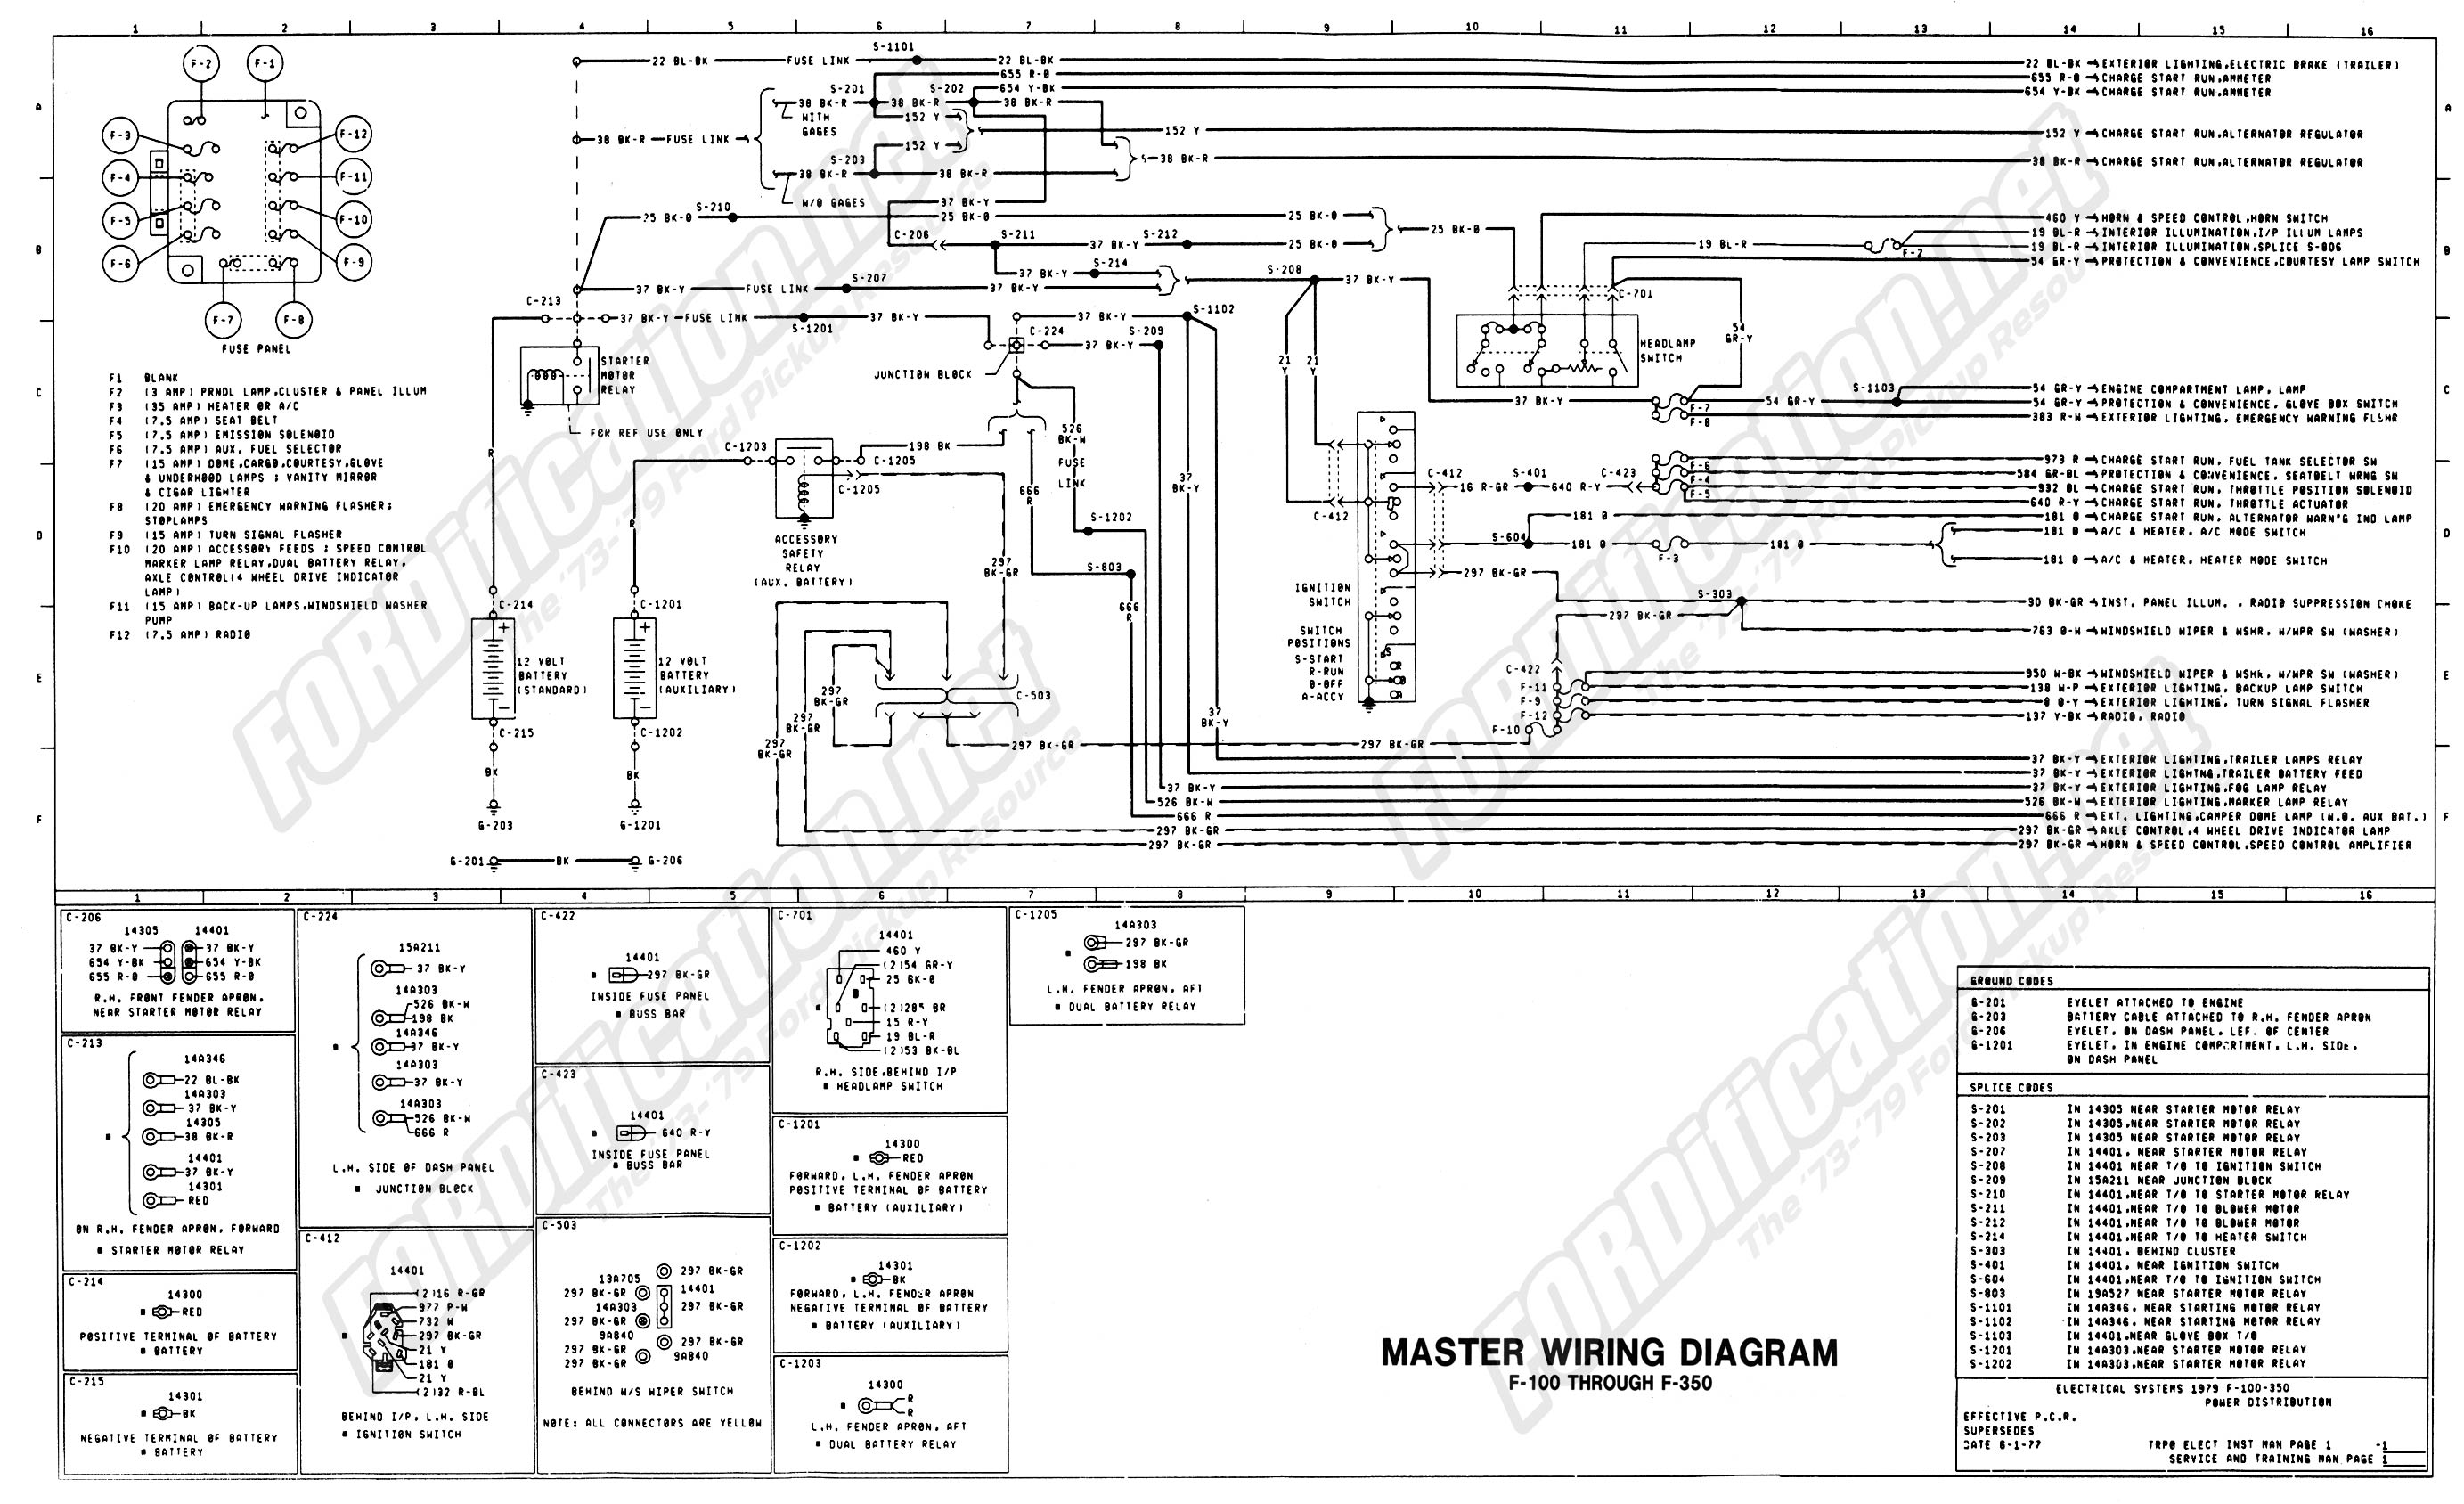 wiring_79master_1of9 wiring diagram for international truck the wiring diagram Ford 4600 Wiring Schematic at nearapp.co